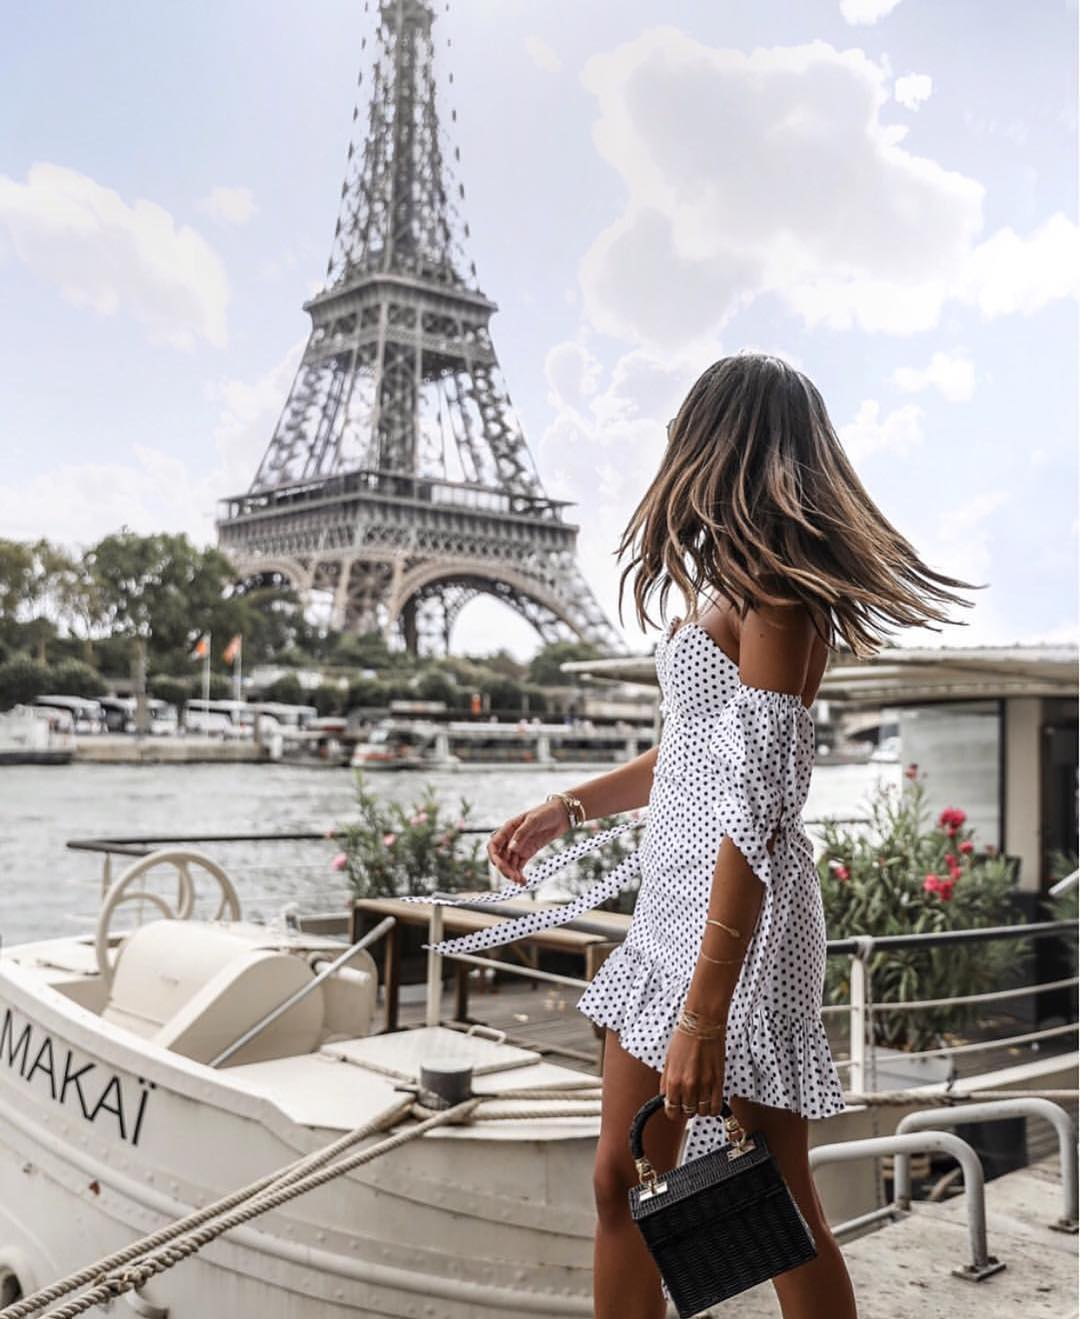 Parisian Chic Style For Summer: White Dress In Black Polka Dots 2020